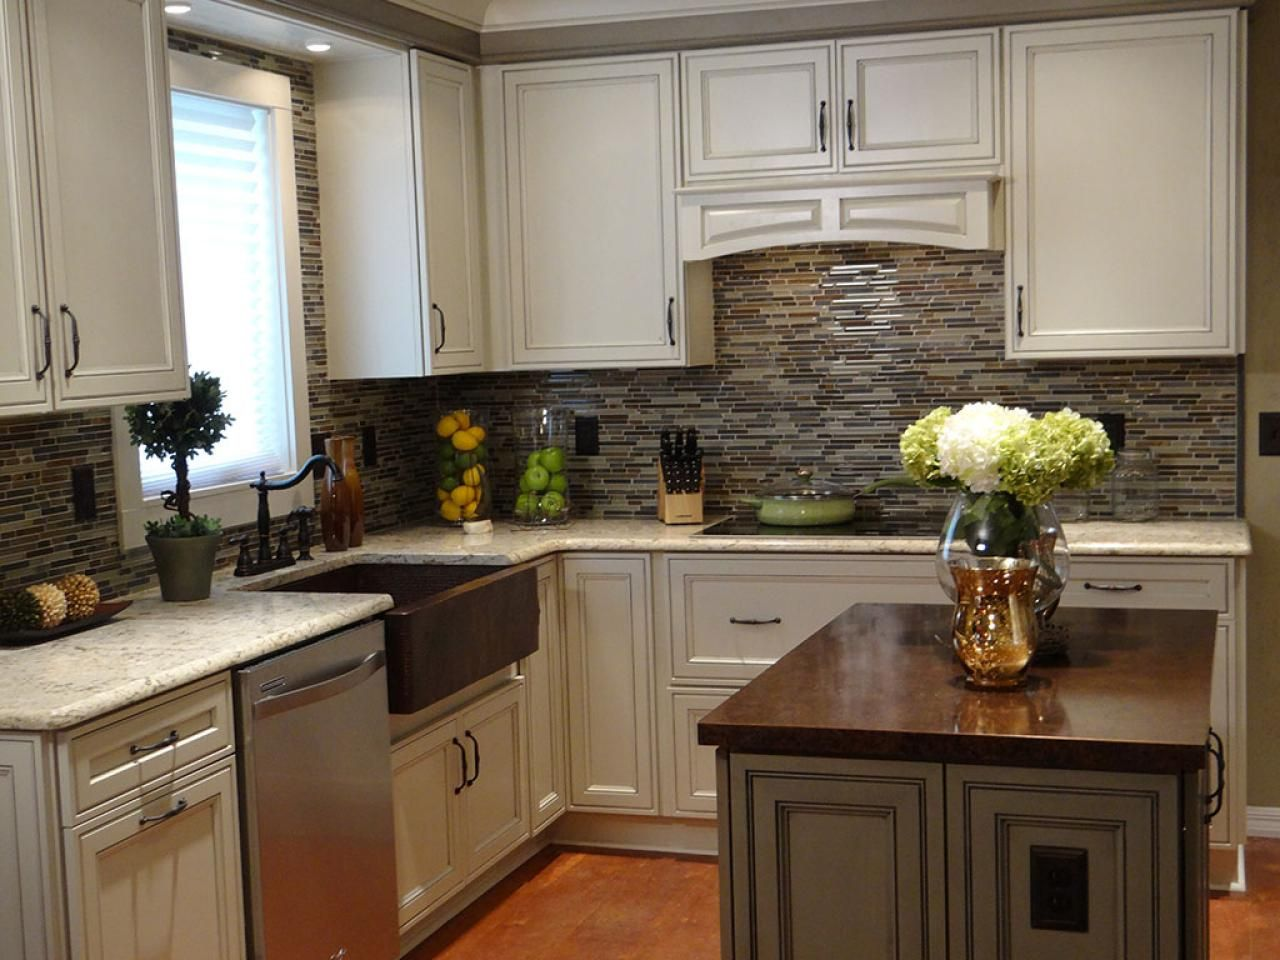 Kitchen construction design and layout - 20 Small Kitchen Makeovers By Hgtv Hosts